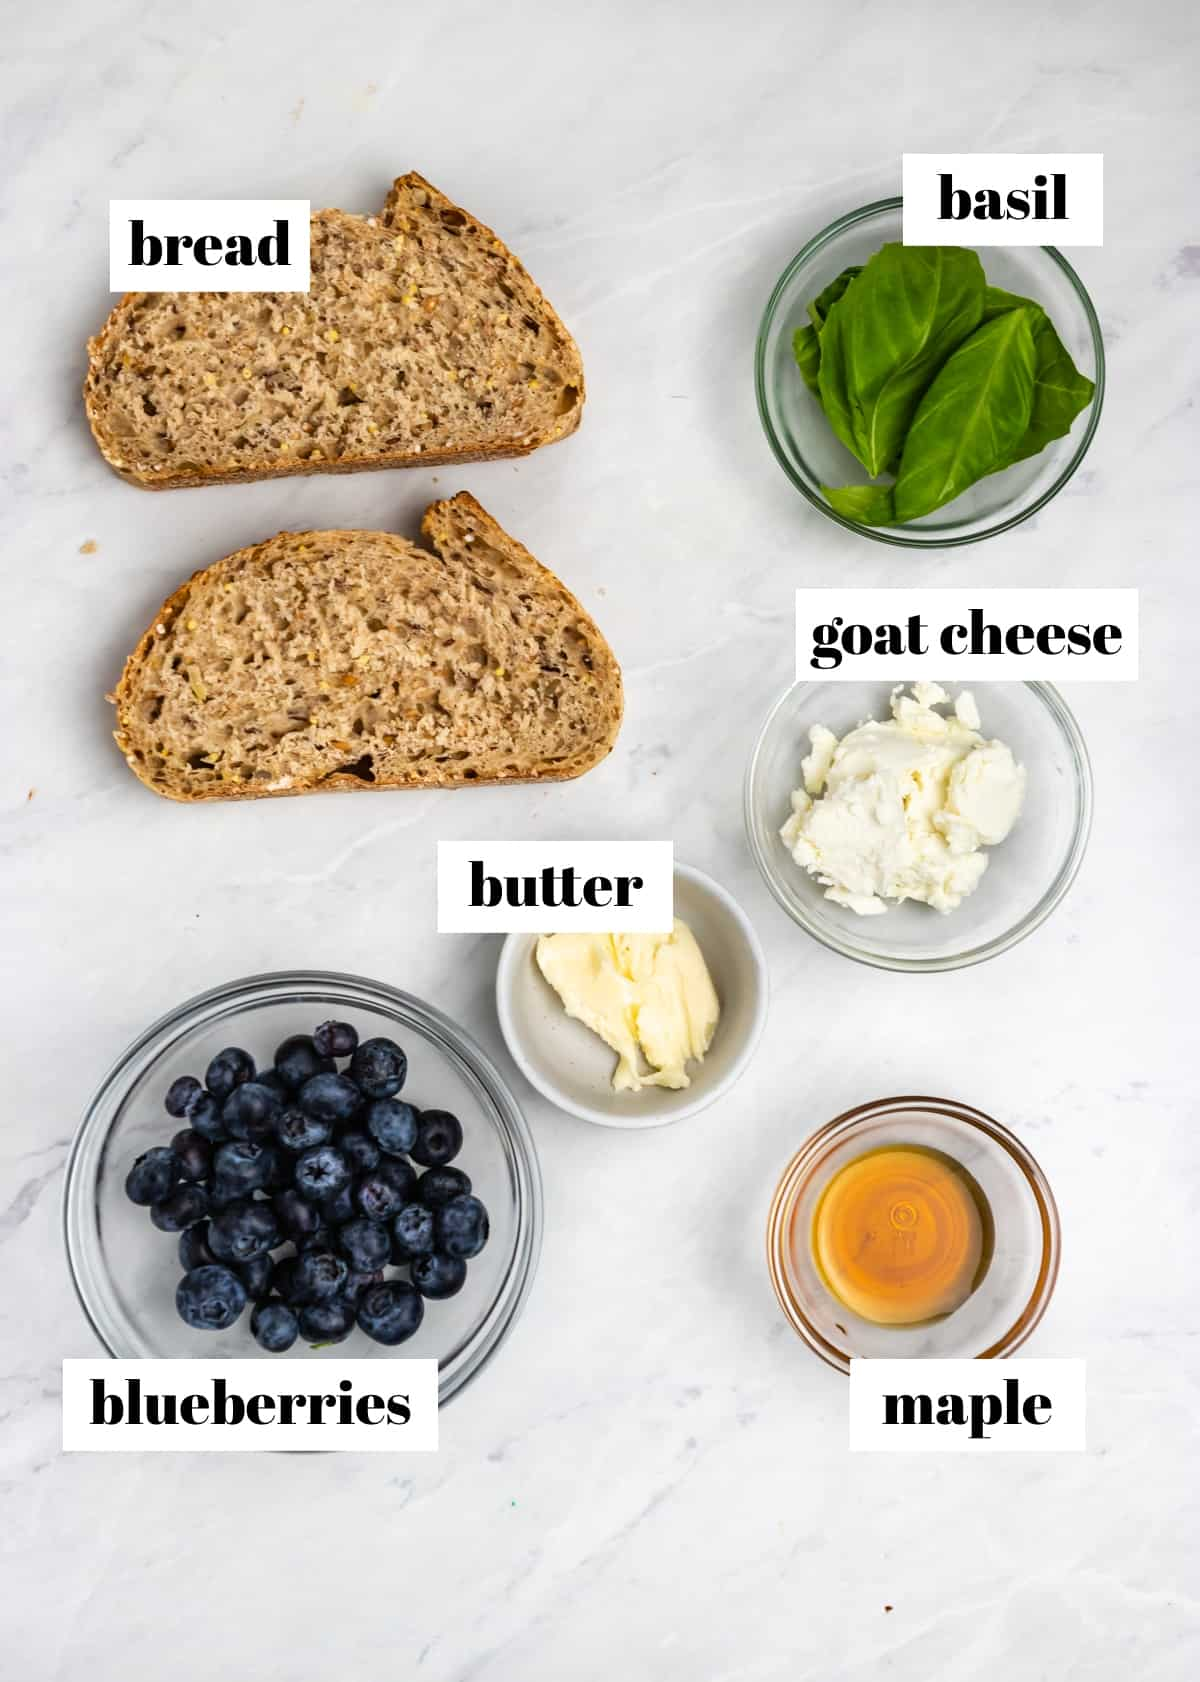 Bread, cheese, basil, blueberries and other ingredients labeled on counter.